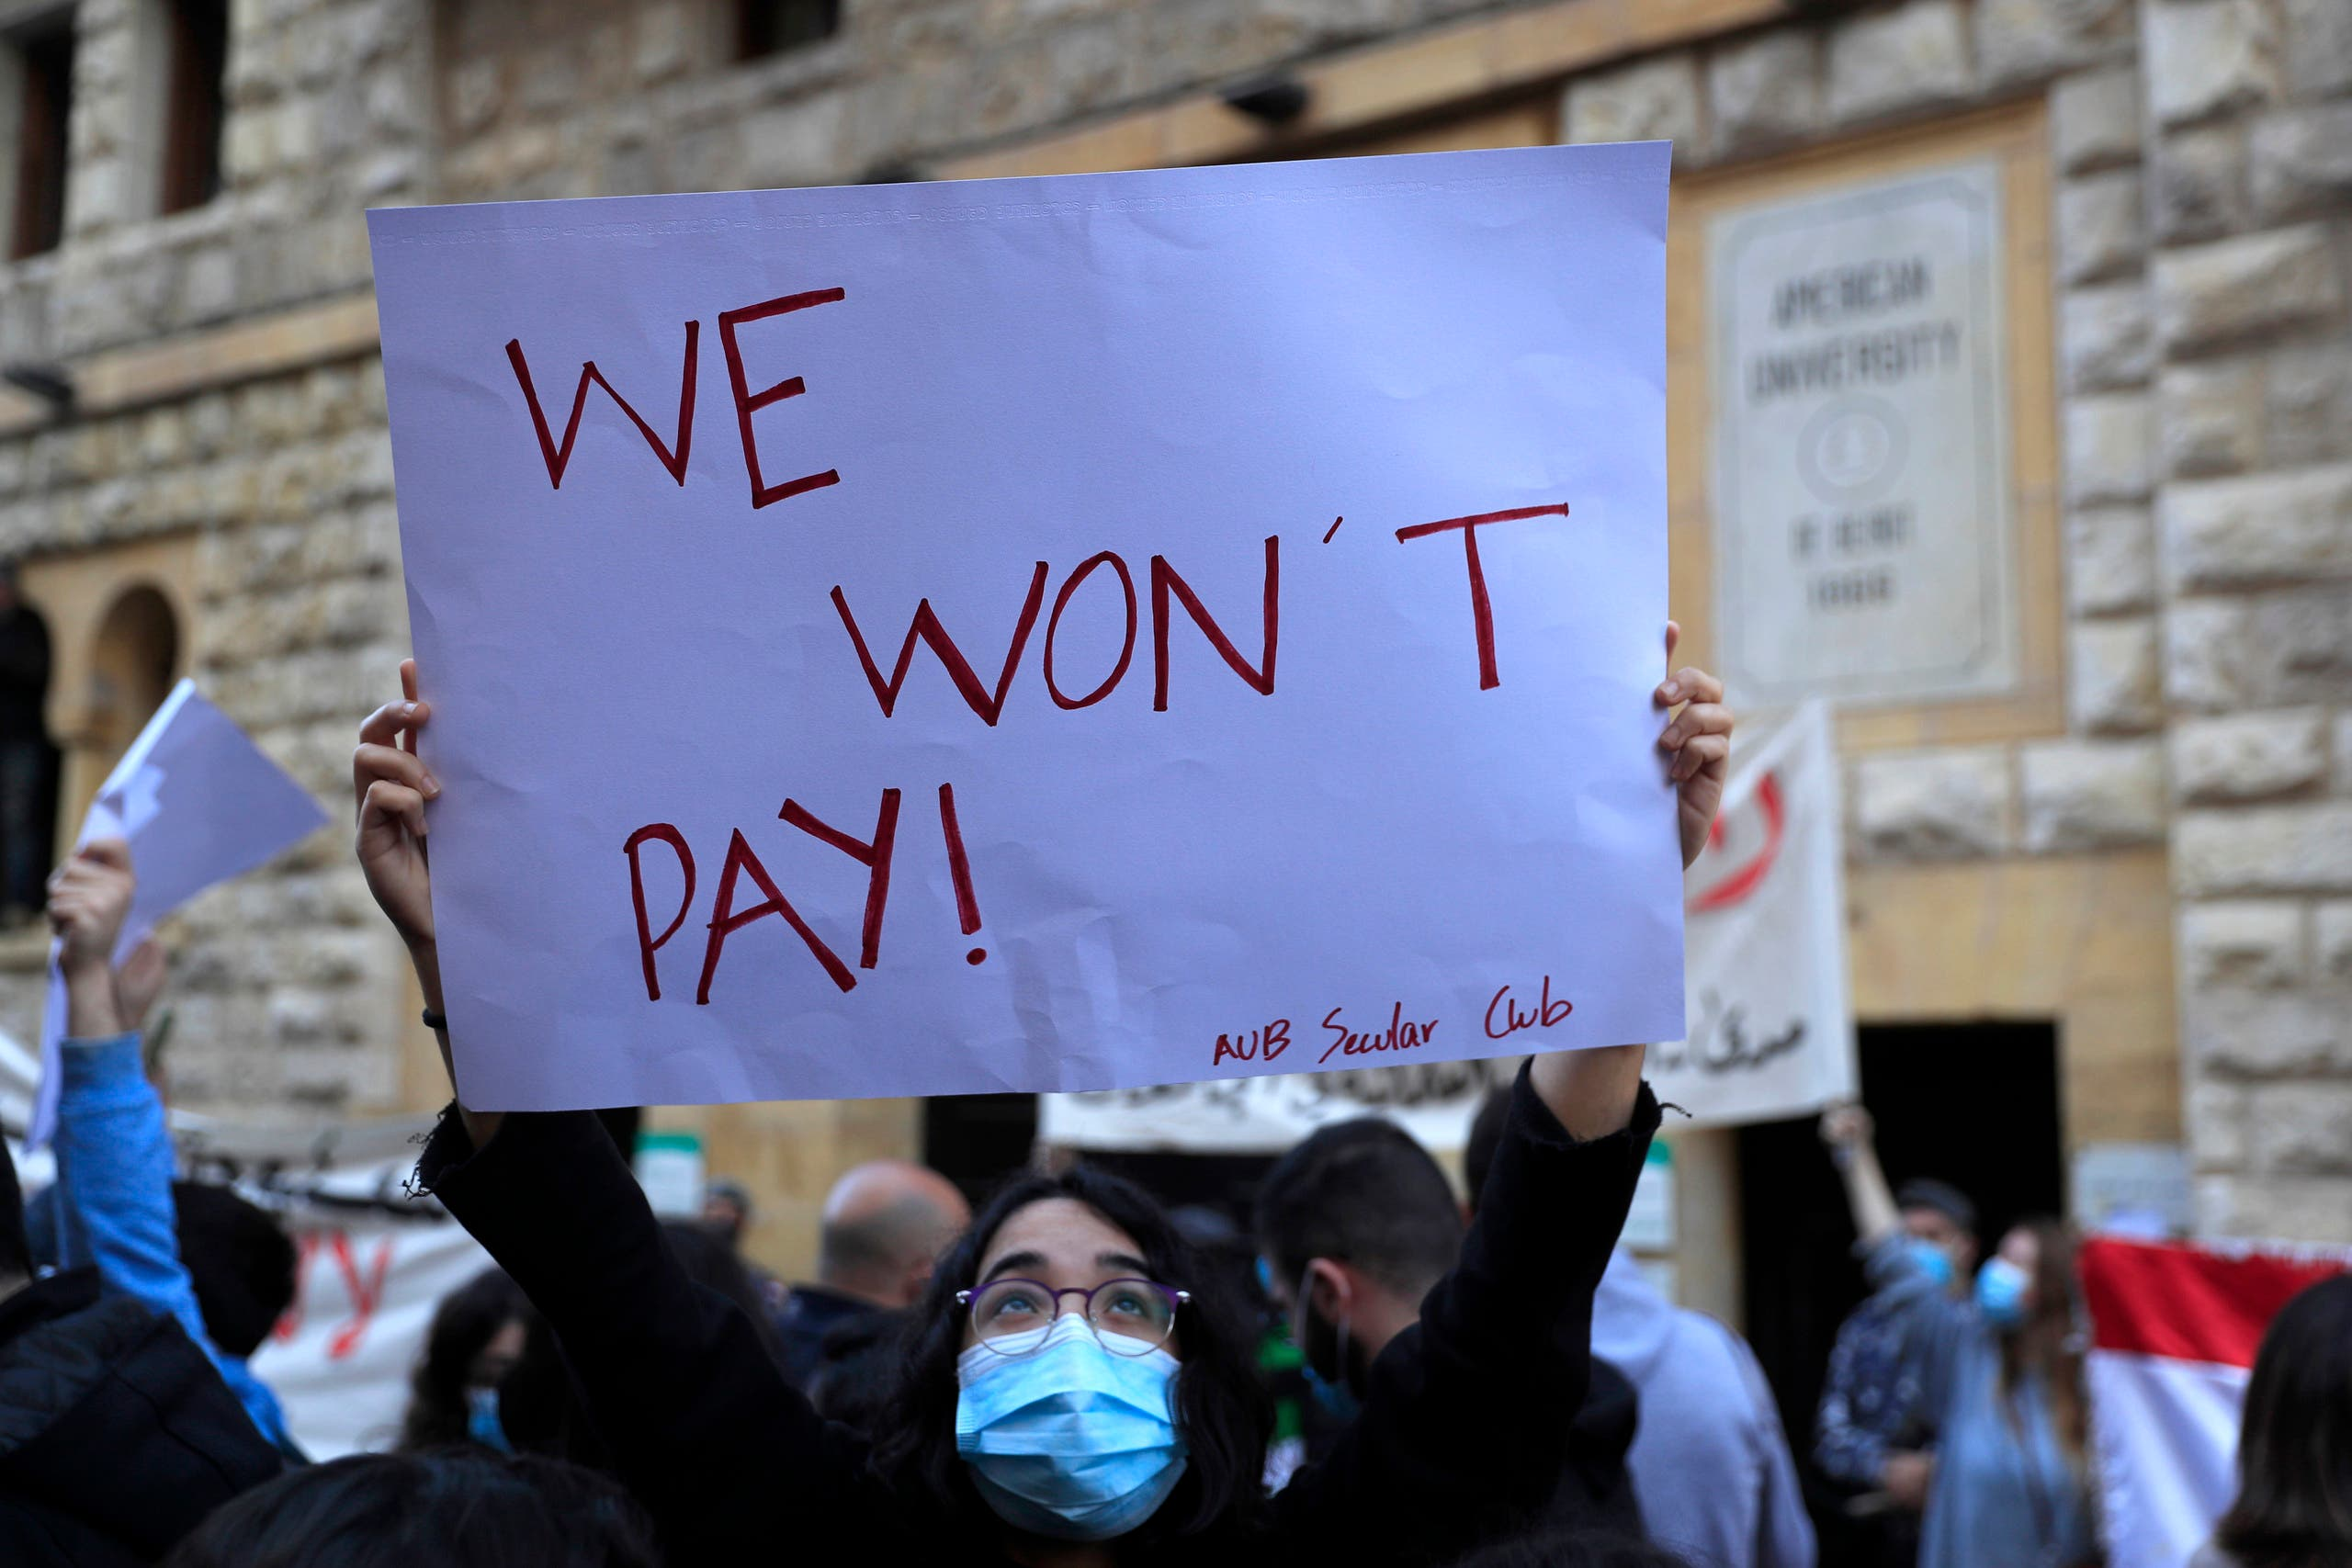 A student from the American University of Beirut (AUB) holds up a placard during a protest against the adjustment of the dollar rate for new tuition fees, in Beirut, Lebanon, Tuesday, Dec. 29, 2020. (File photo: AP)